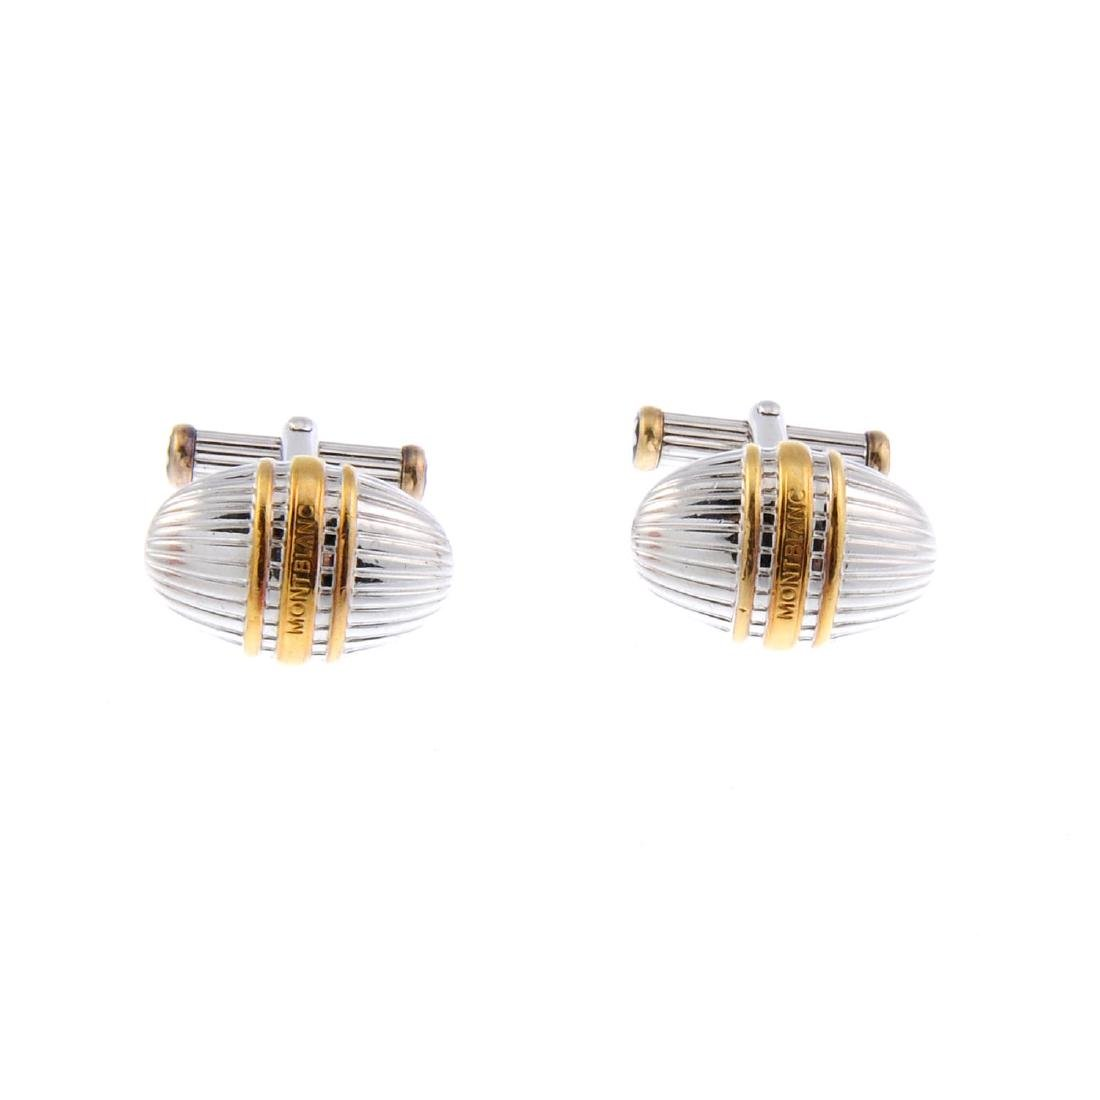 MONT BLANC - a pair of bi-colour cufflinks and matching